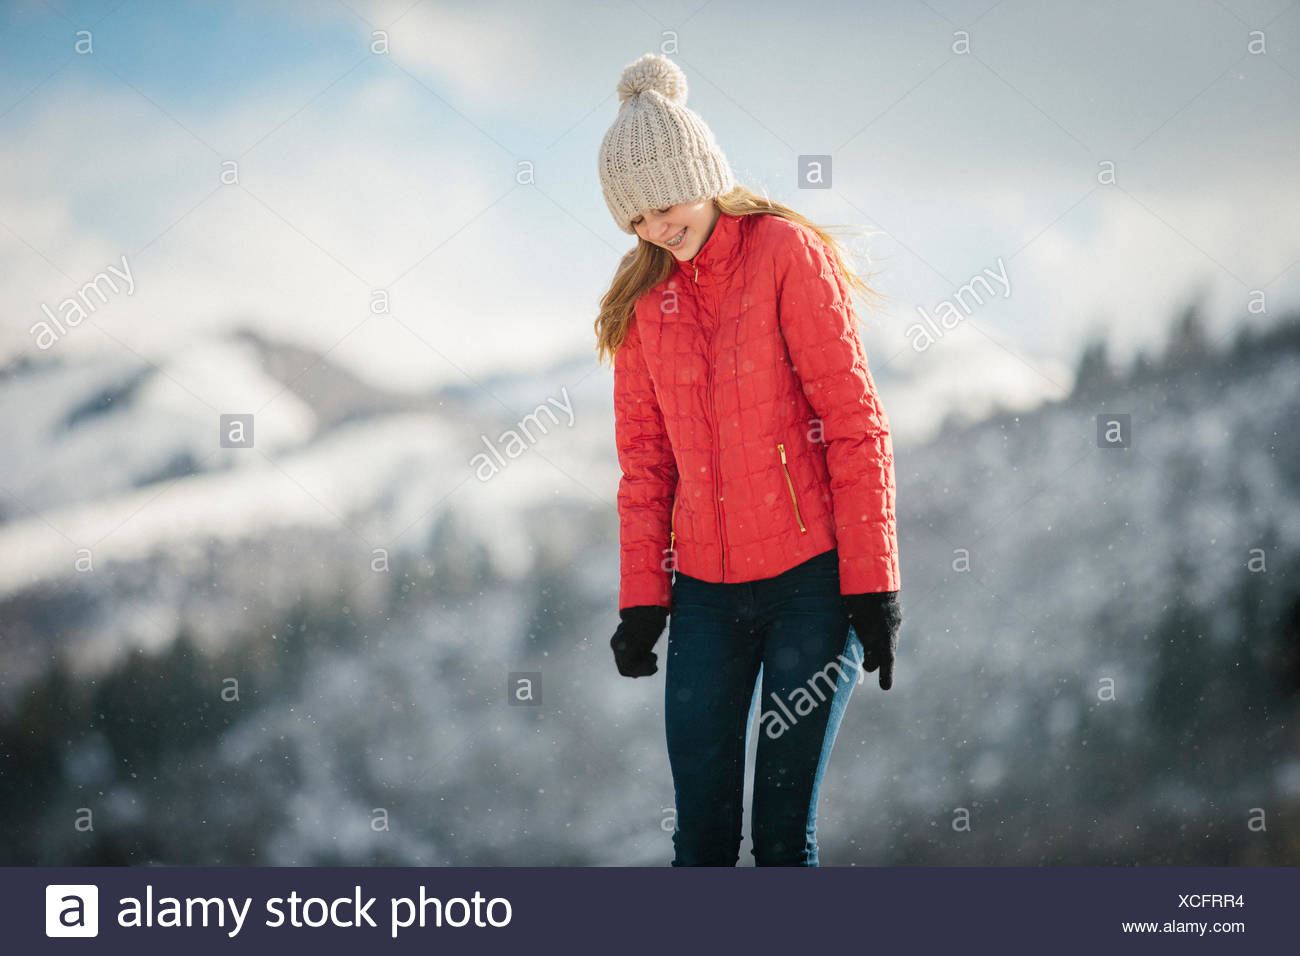 A young girl in a red coat and woolly hat outdoors in the winter. - Stock Image